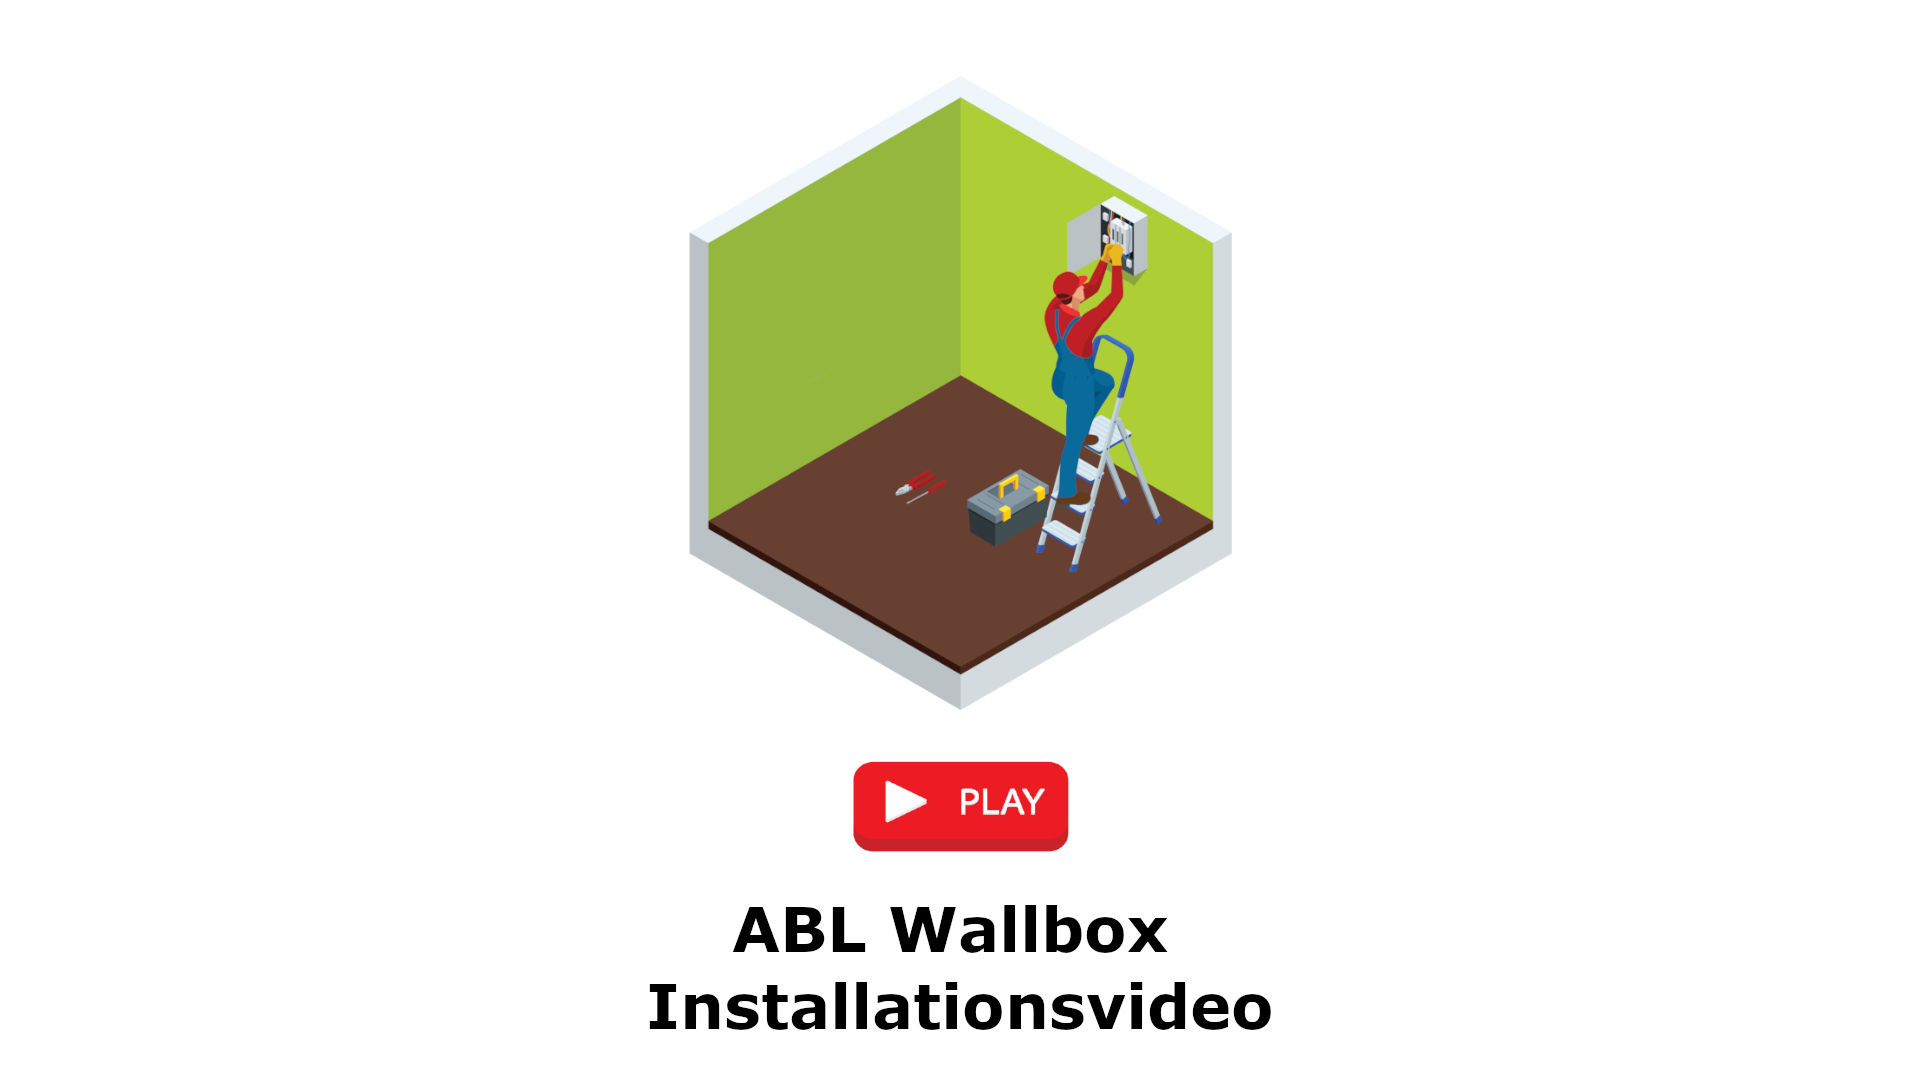 ABL Wallbox Installationsvideo